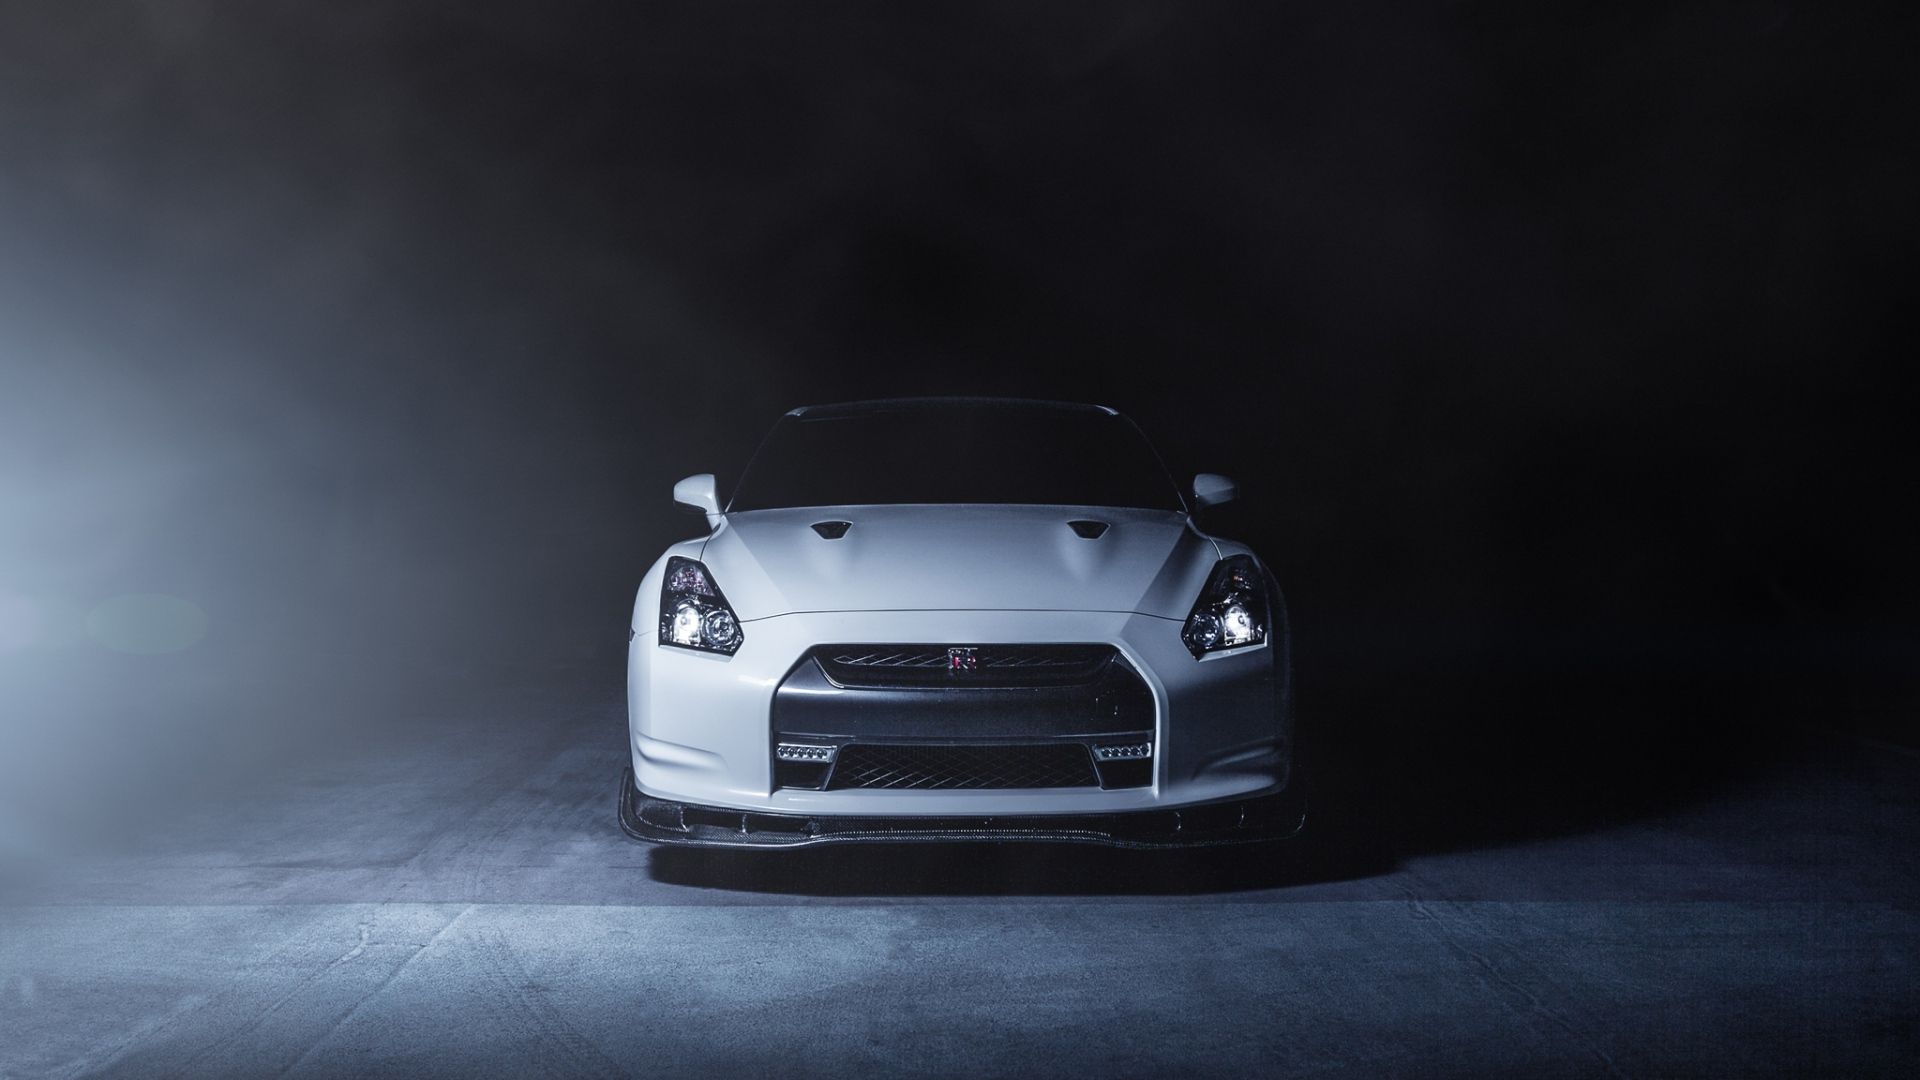 1920x1080 Wallpaper nissan gt r r35 white front smoke Car 1920x1080